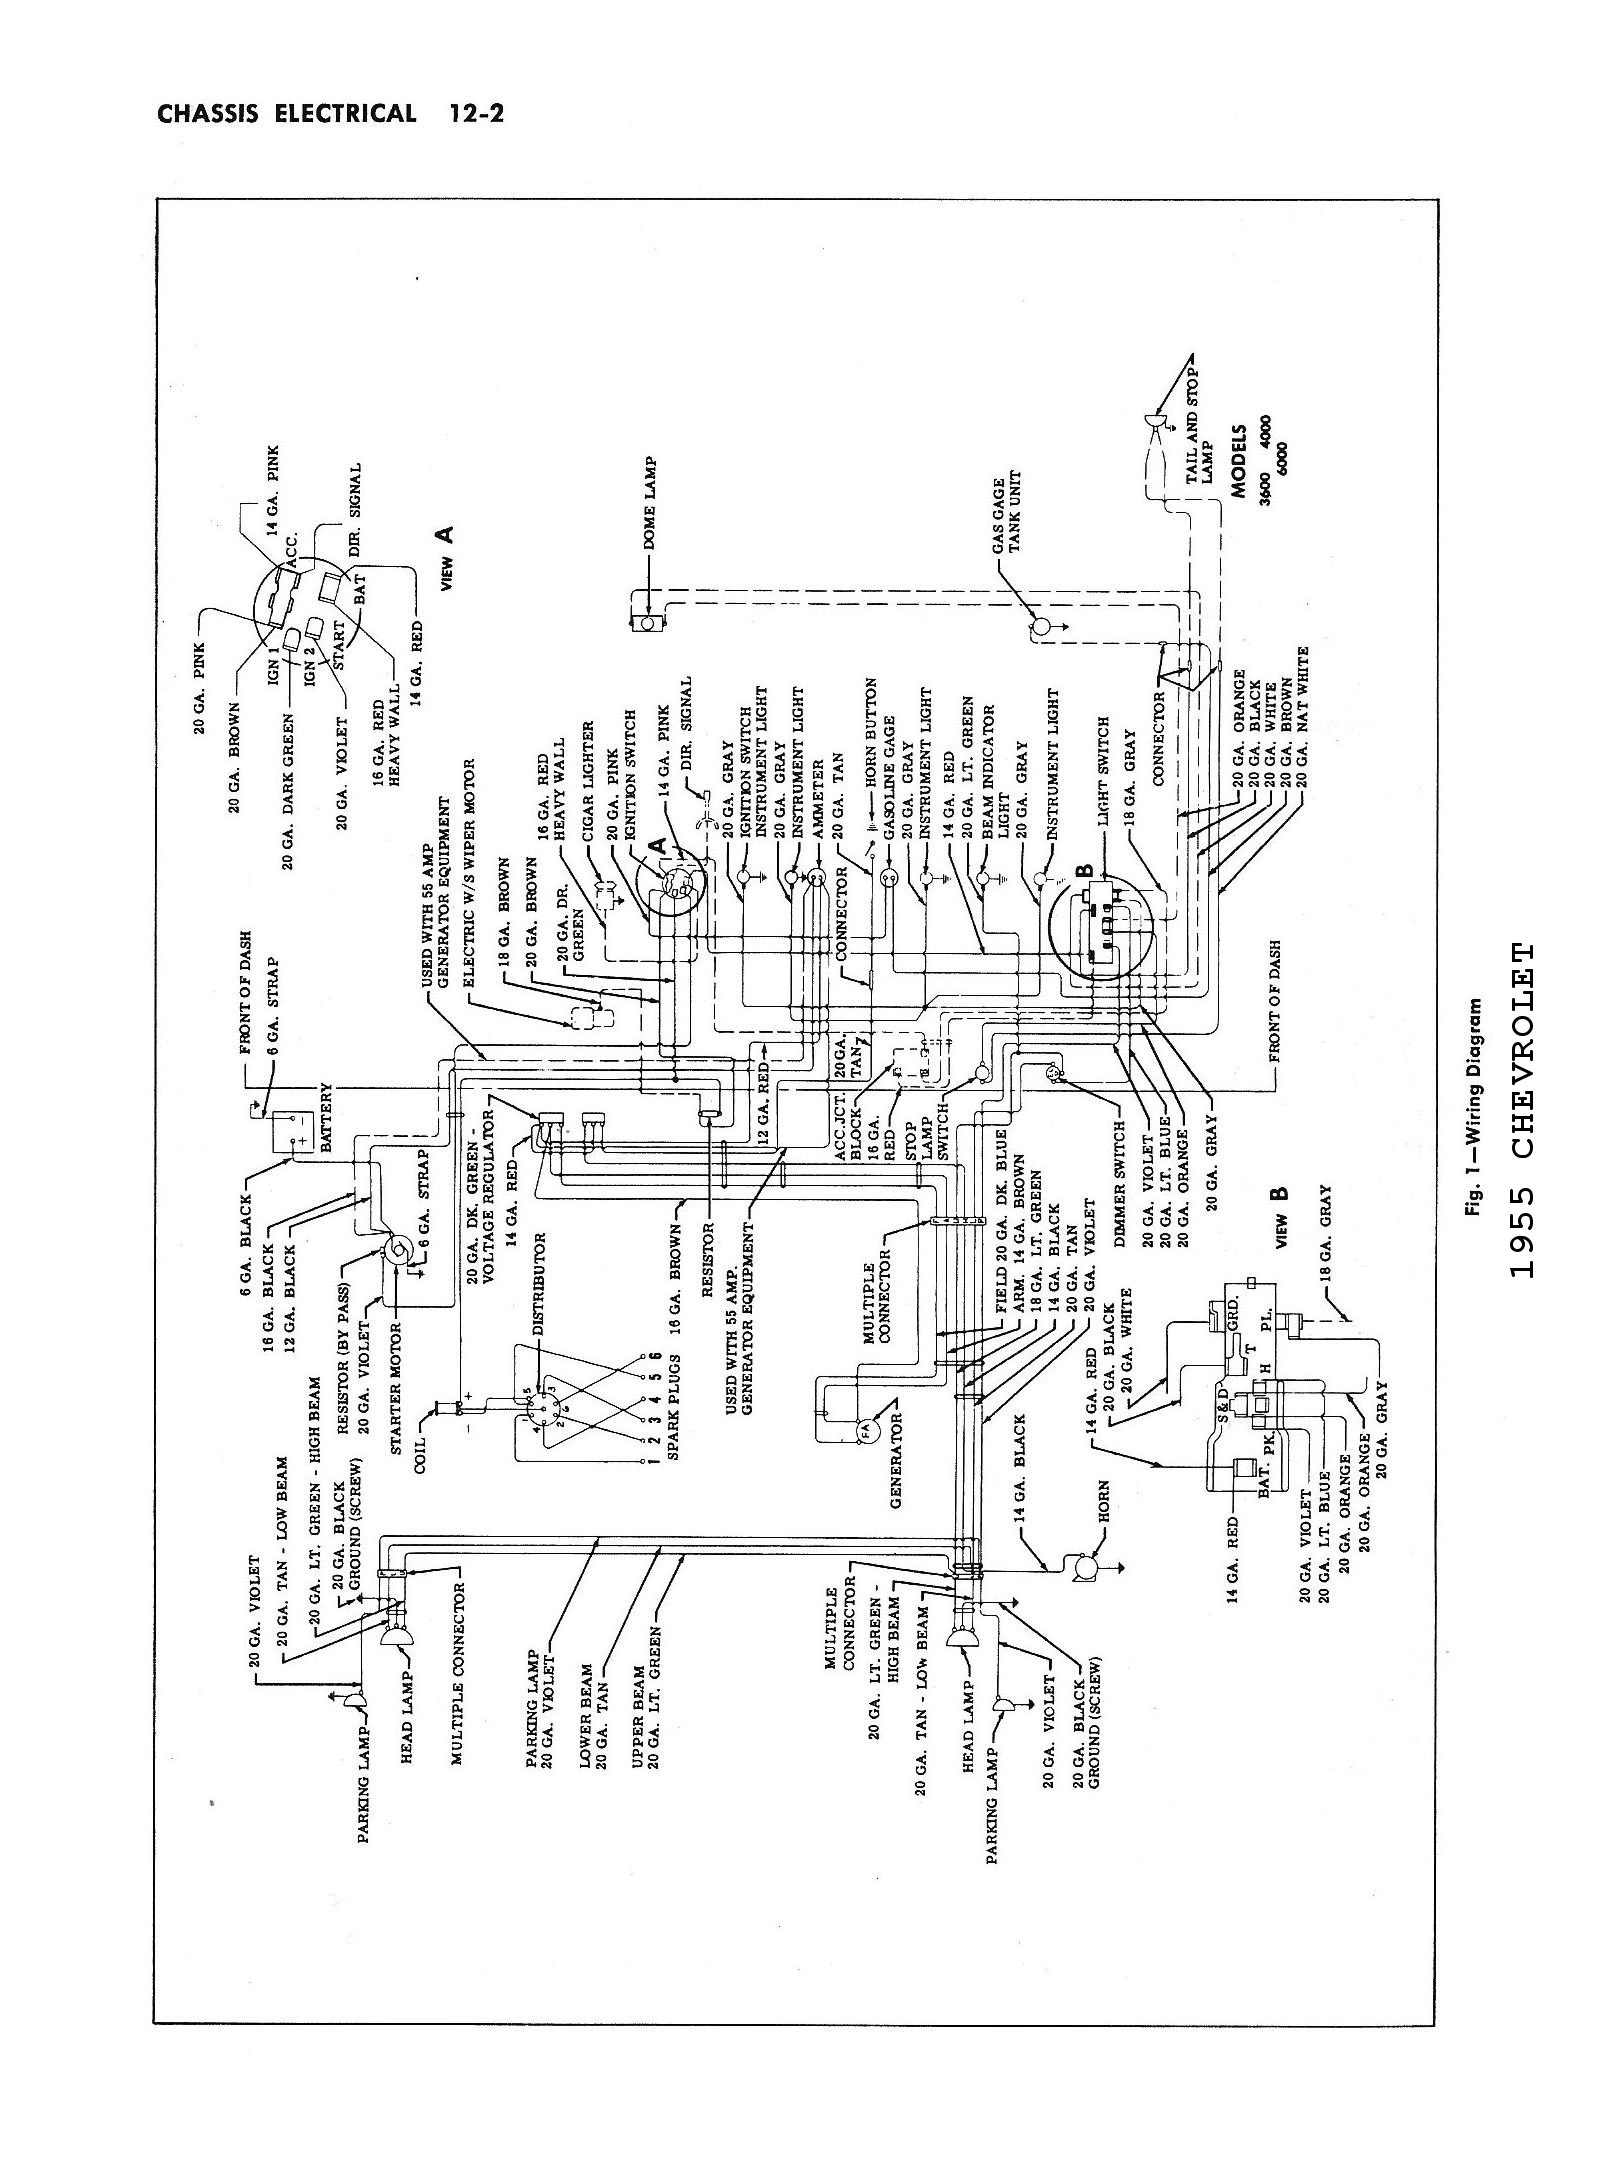 Wiring Diagram Additionally 1956 Chevy Truck Wiring Diagram On 1956